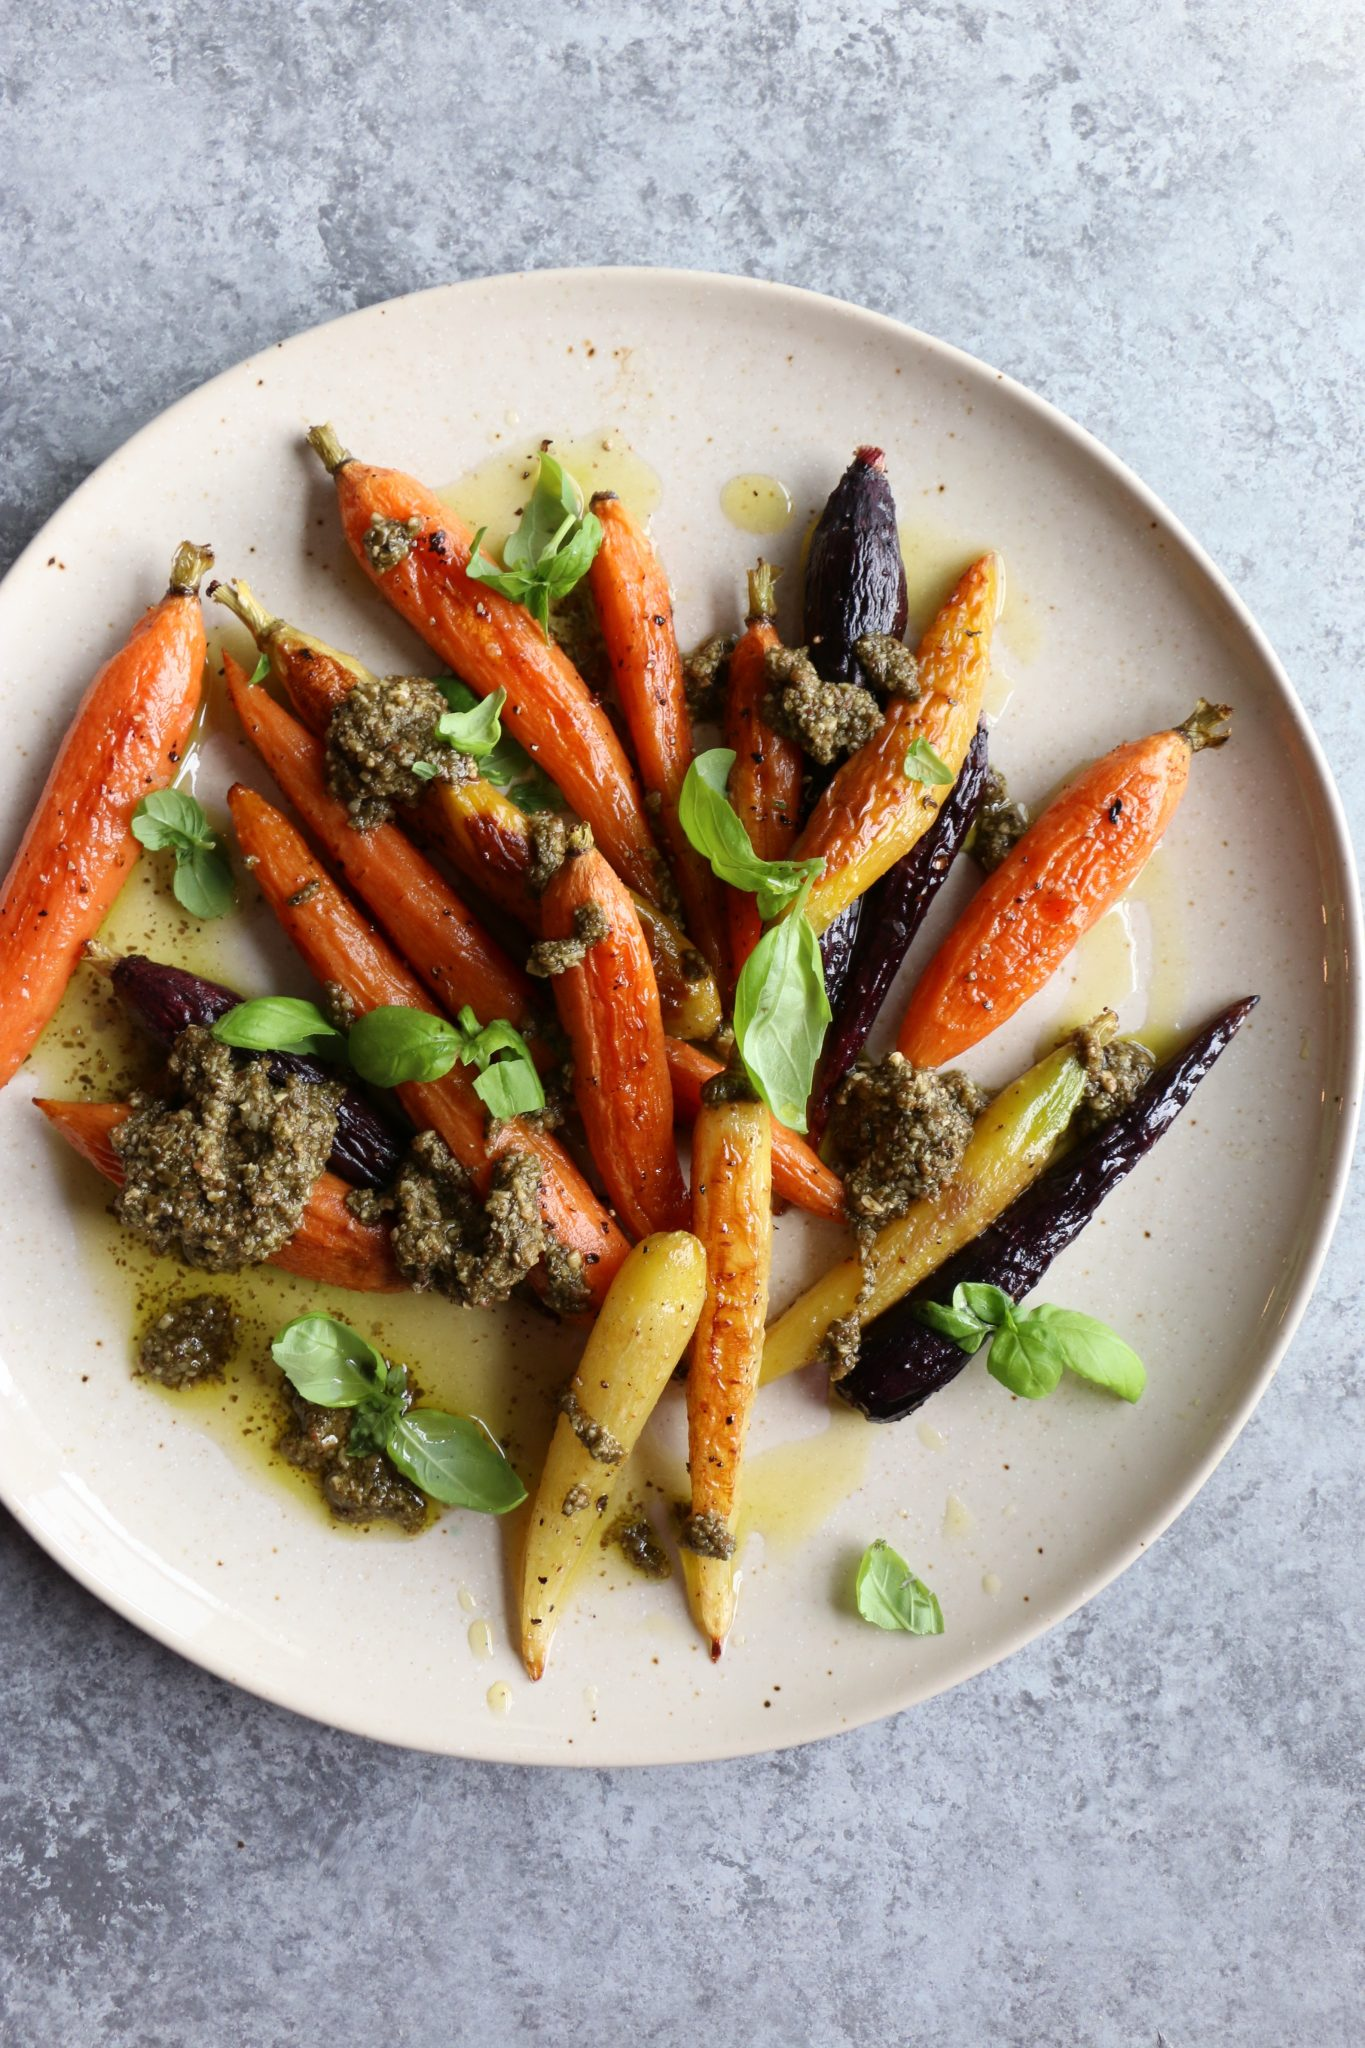 Simple Lunch: Roasted Carrots with Pesto! You don't need to do anything fancy to have a delicious meal. See my post for my best tips!